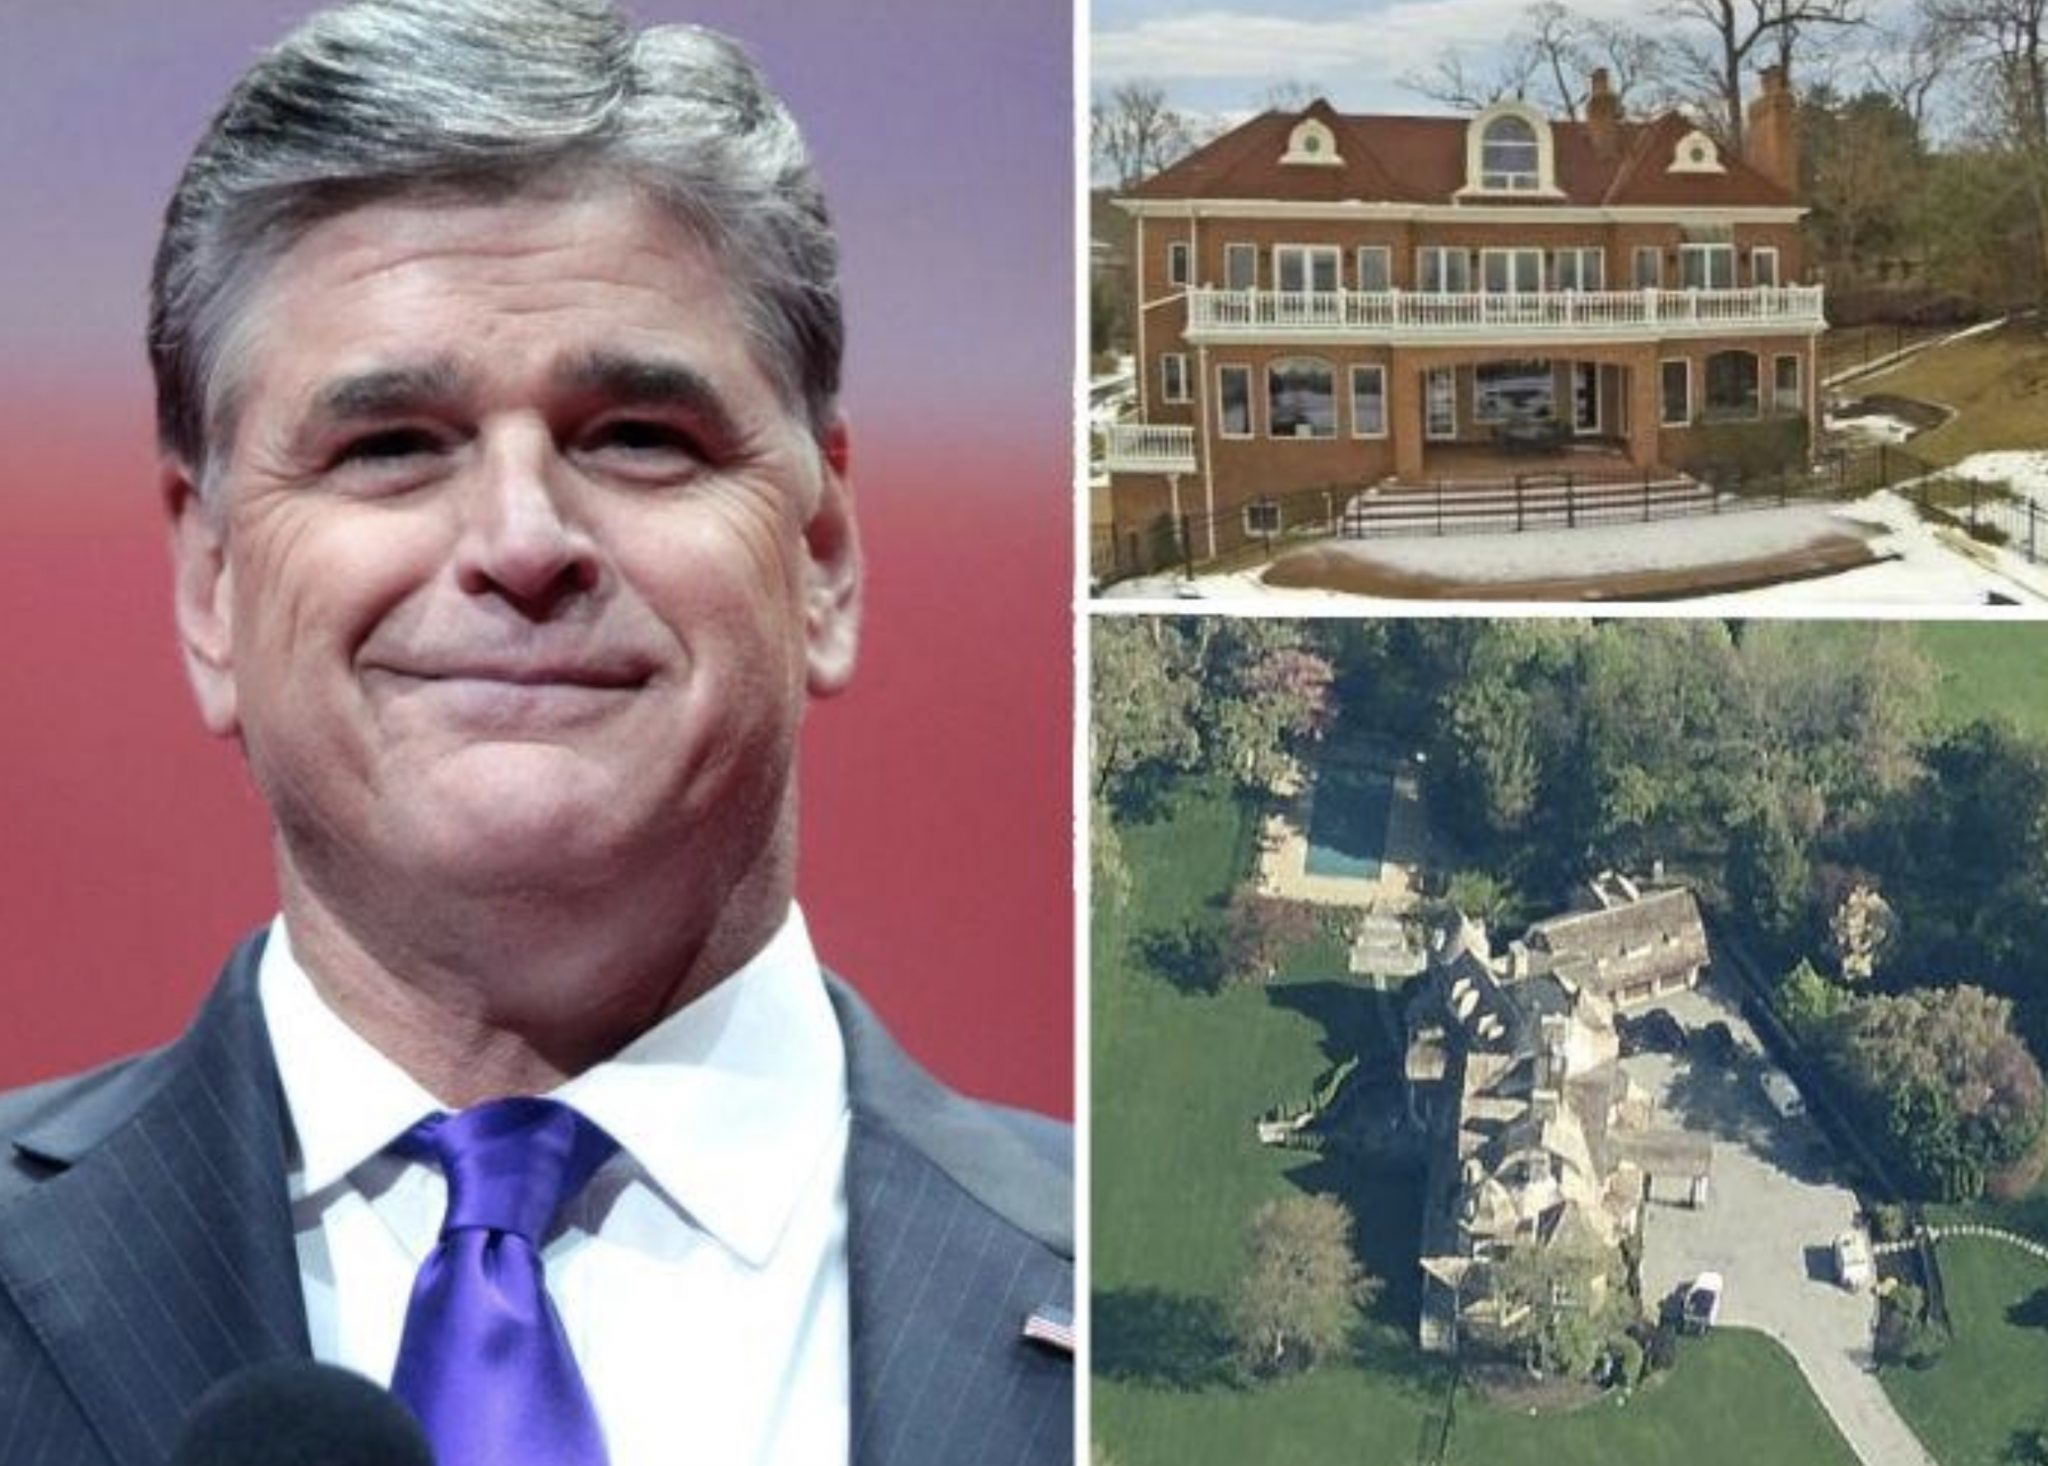 Sean Hannity's 8.5 Million Home In New York